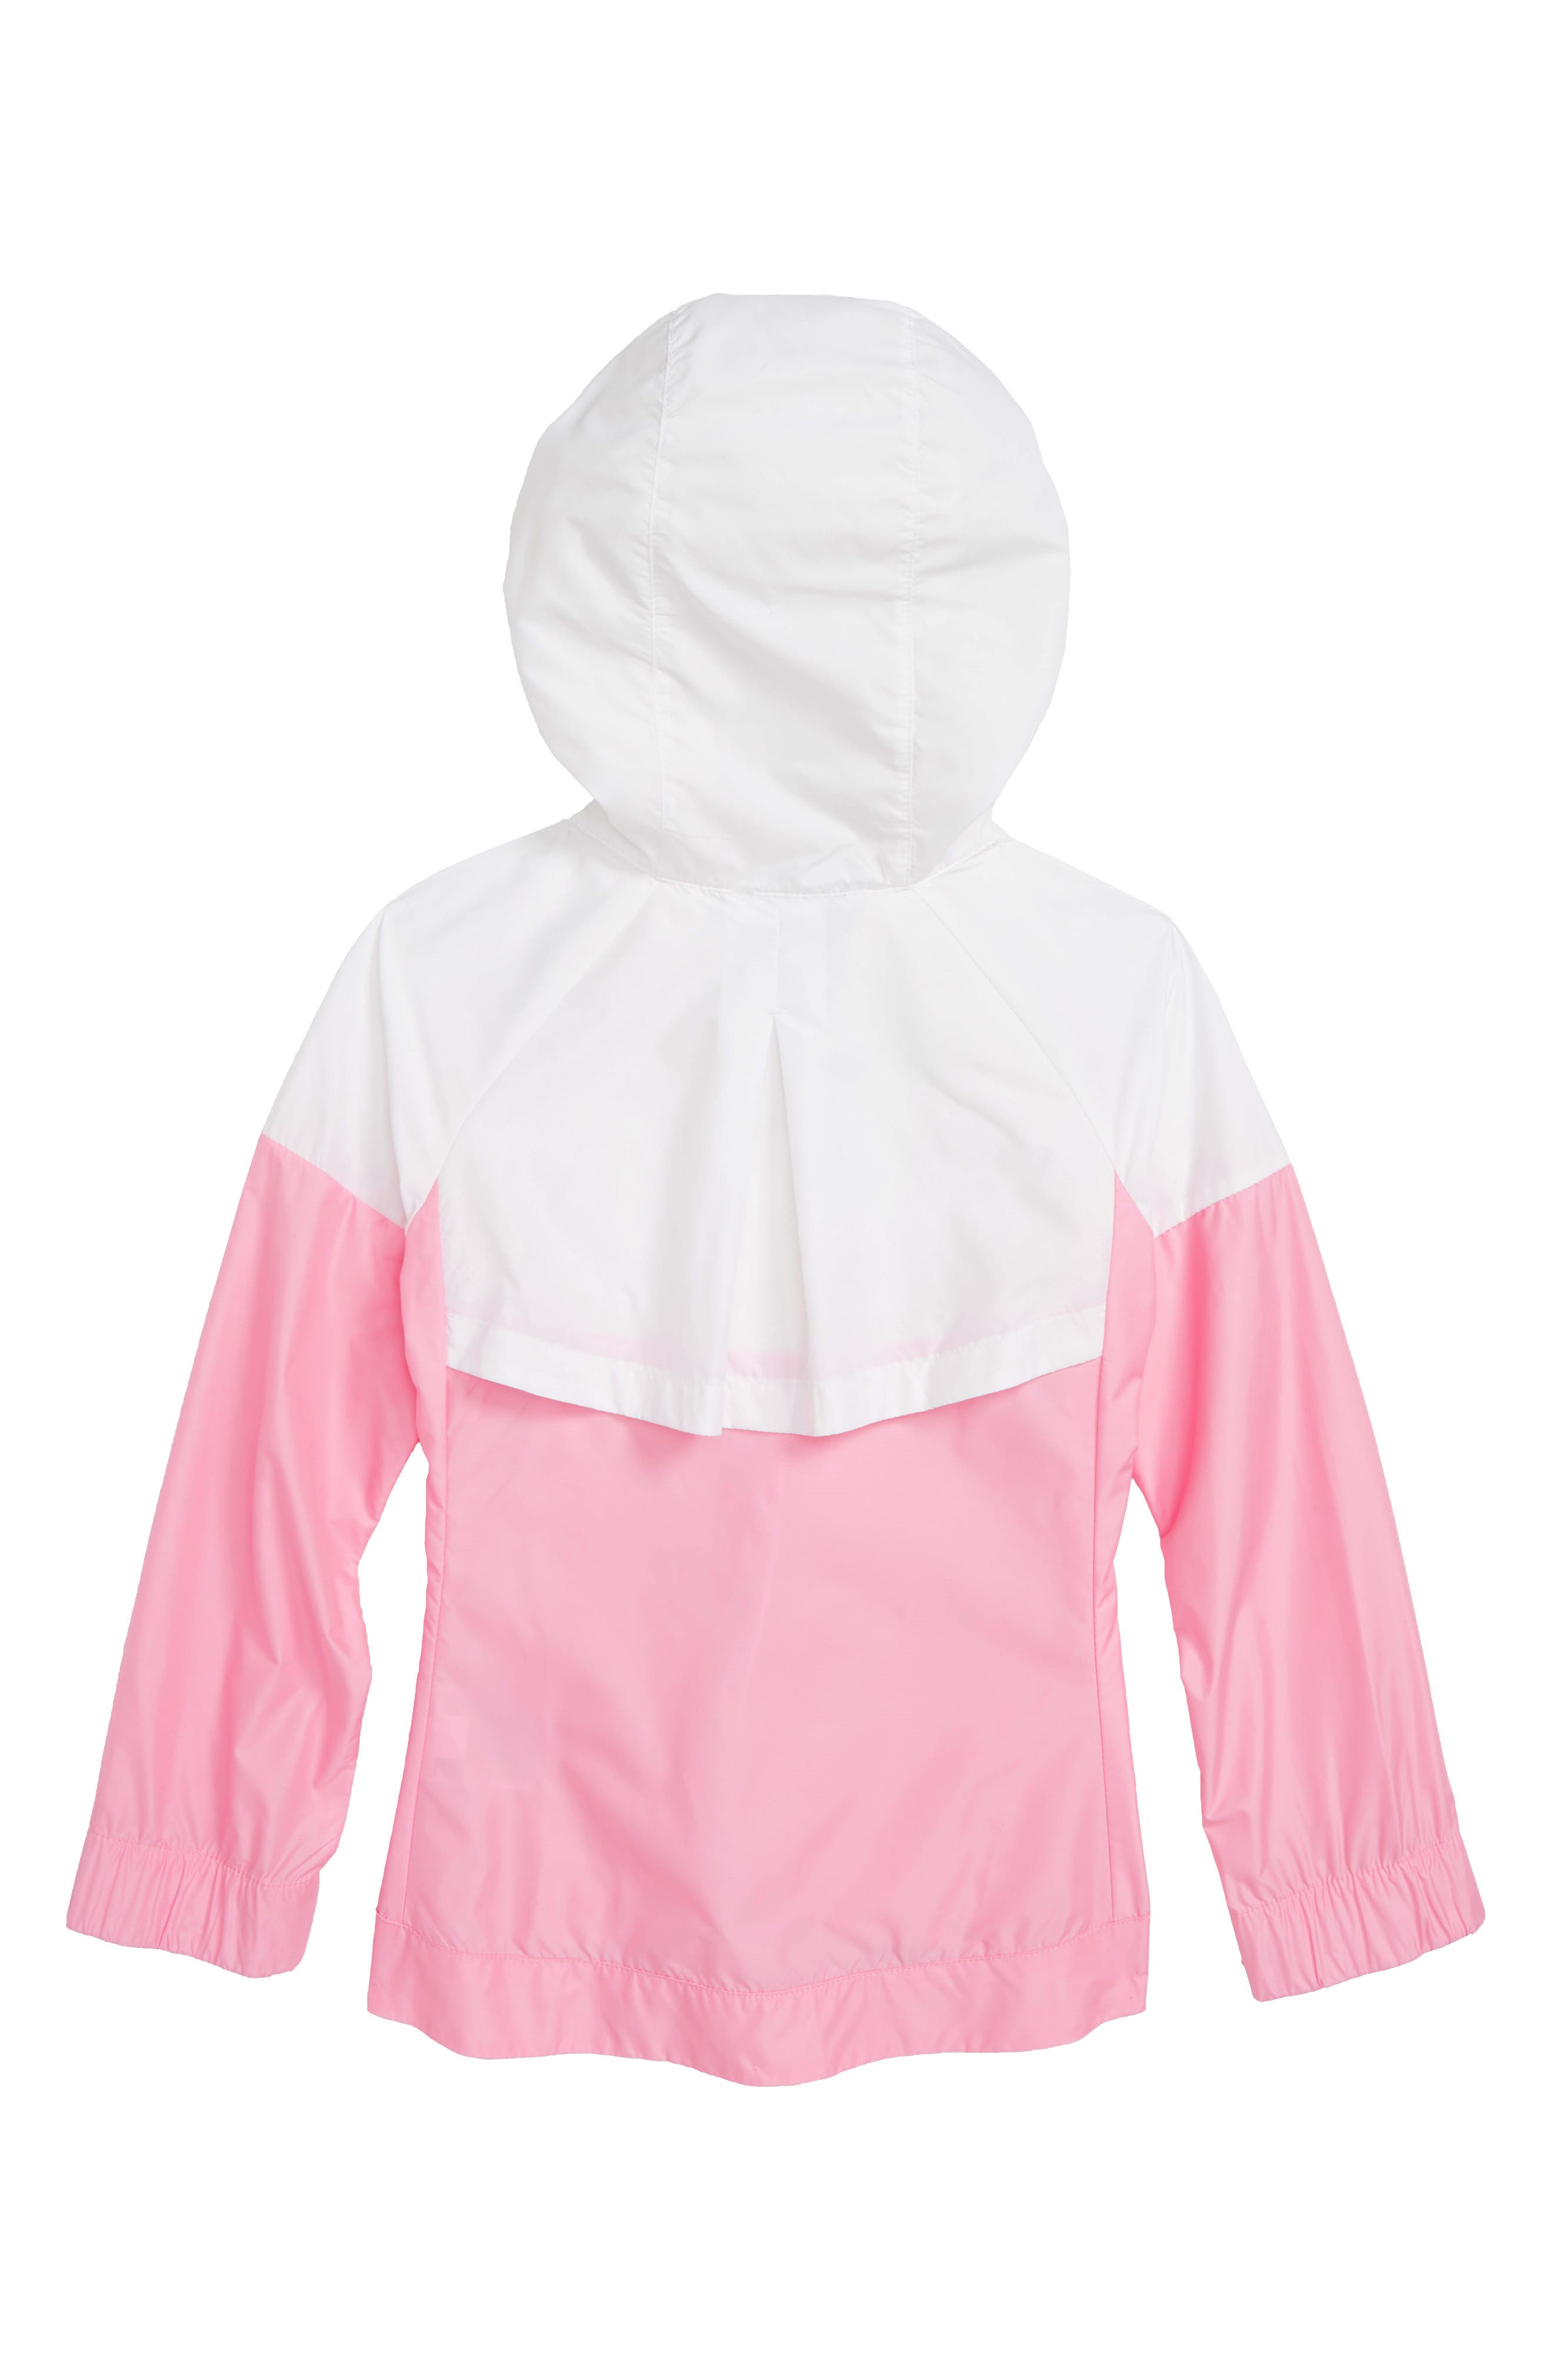 Sportswear Windrunner Jacket,                             Alternate thumbnail 2, color,                             White/ Pink/ Pink